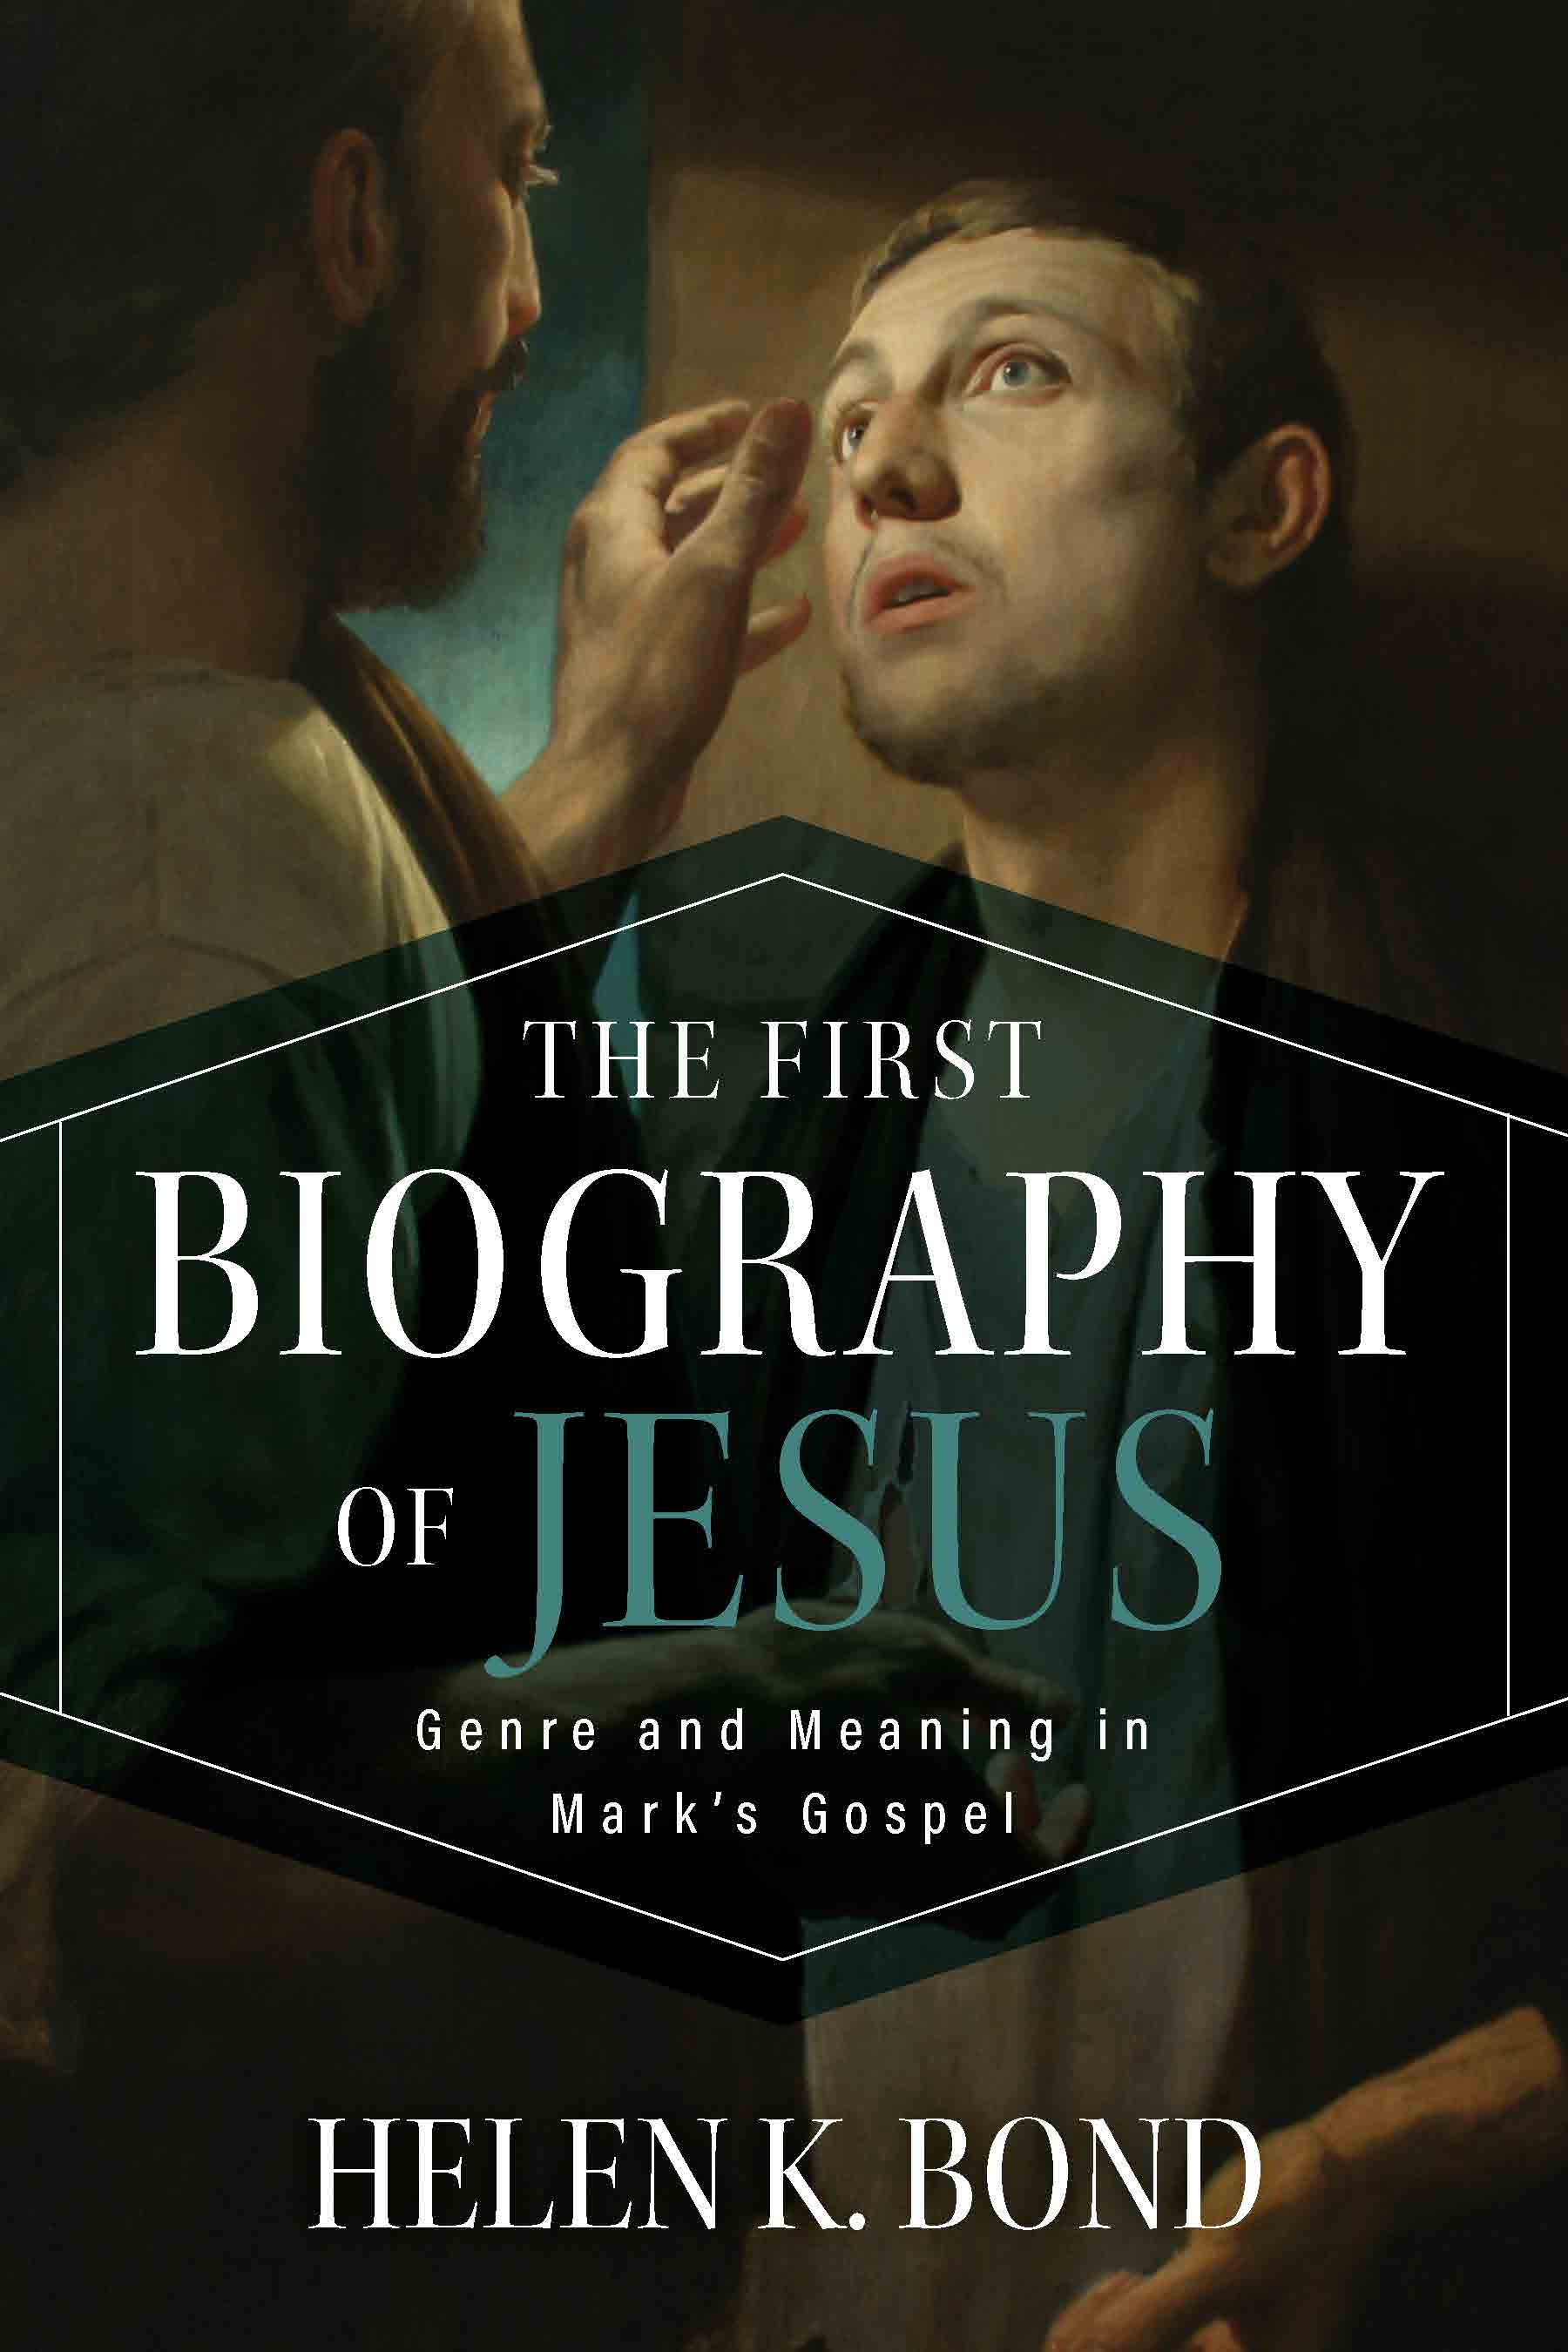 The First Biography of Jesus